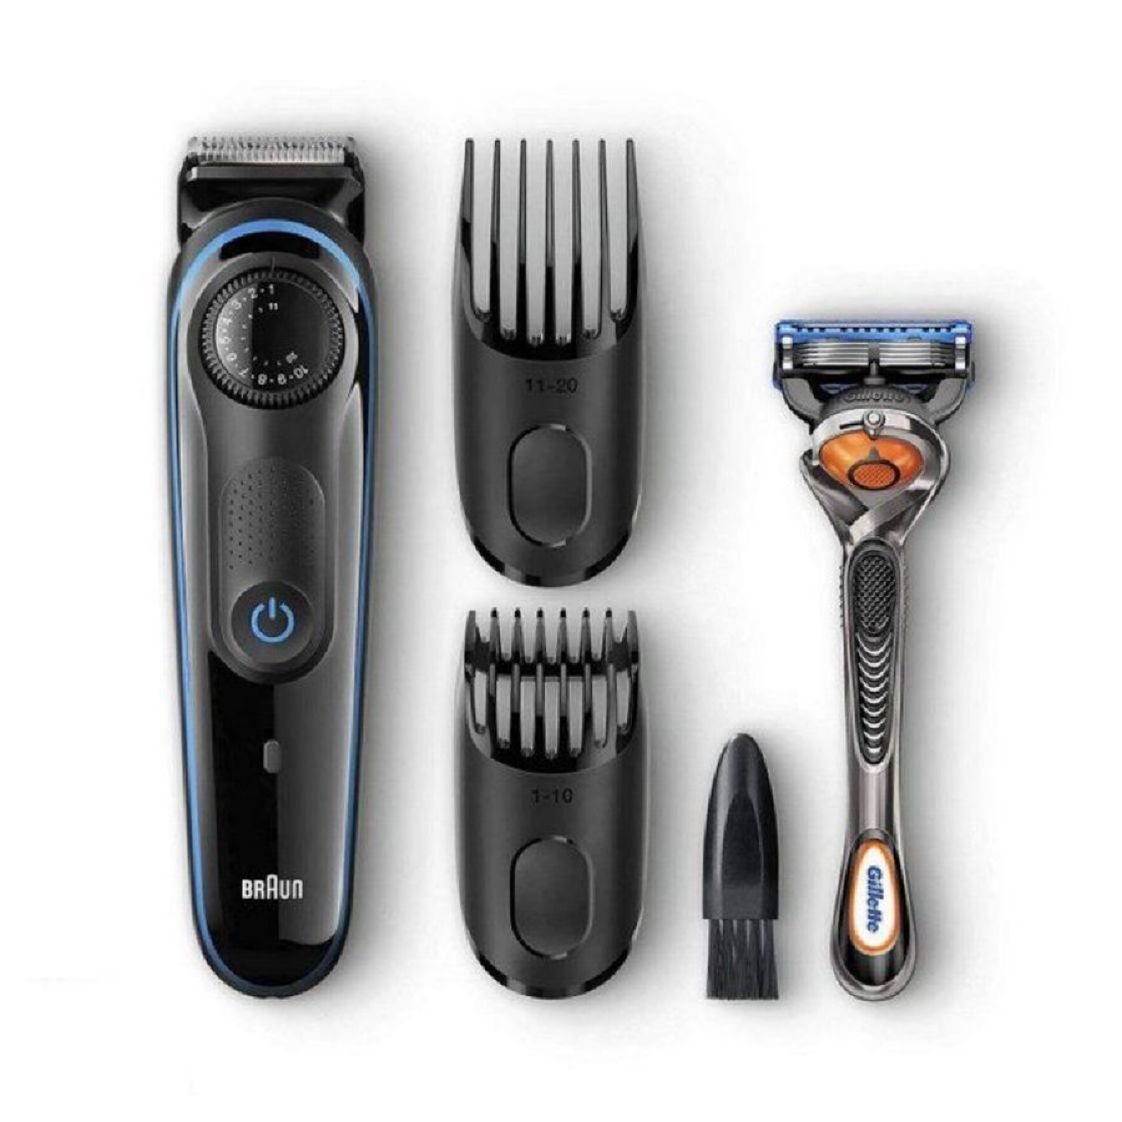 Braun Beard Trimmer for Men, Cordless Hair Clipper, with Gillette ProGlide Razor  $20.99 with Free Prime Shipping    #steals #deals #stealsanddeals